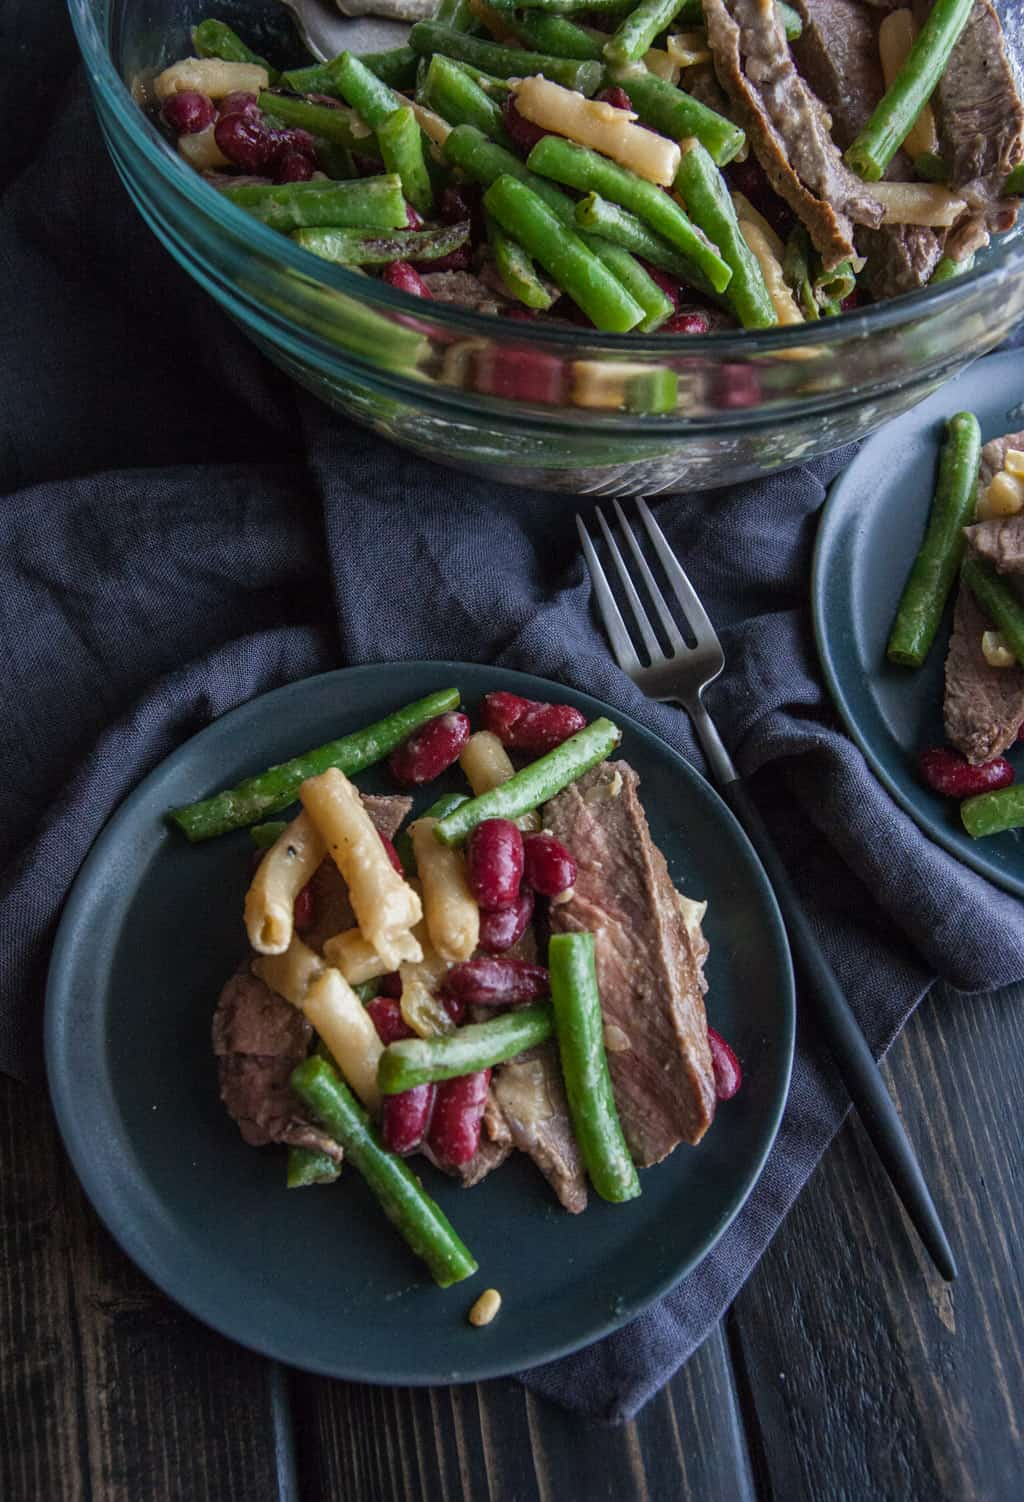 Three bean and steak salad recipe from @sweetphi